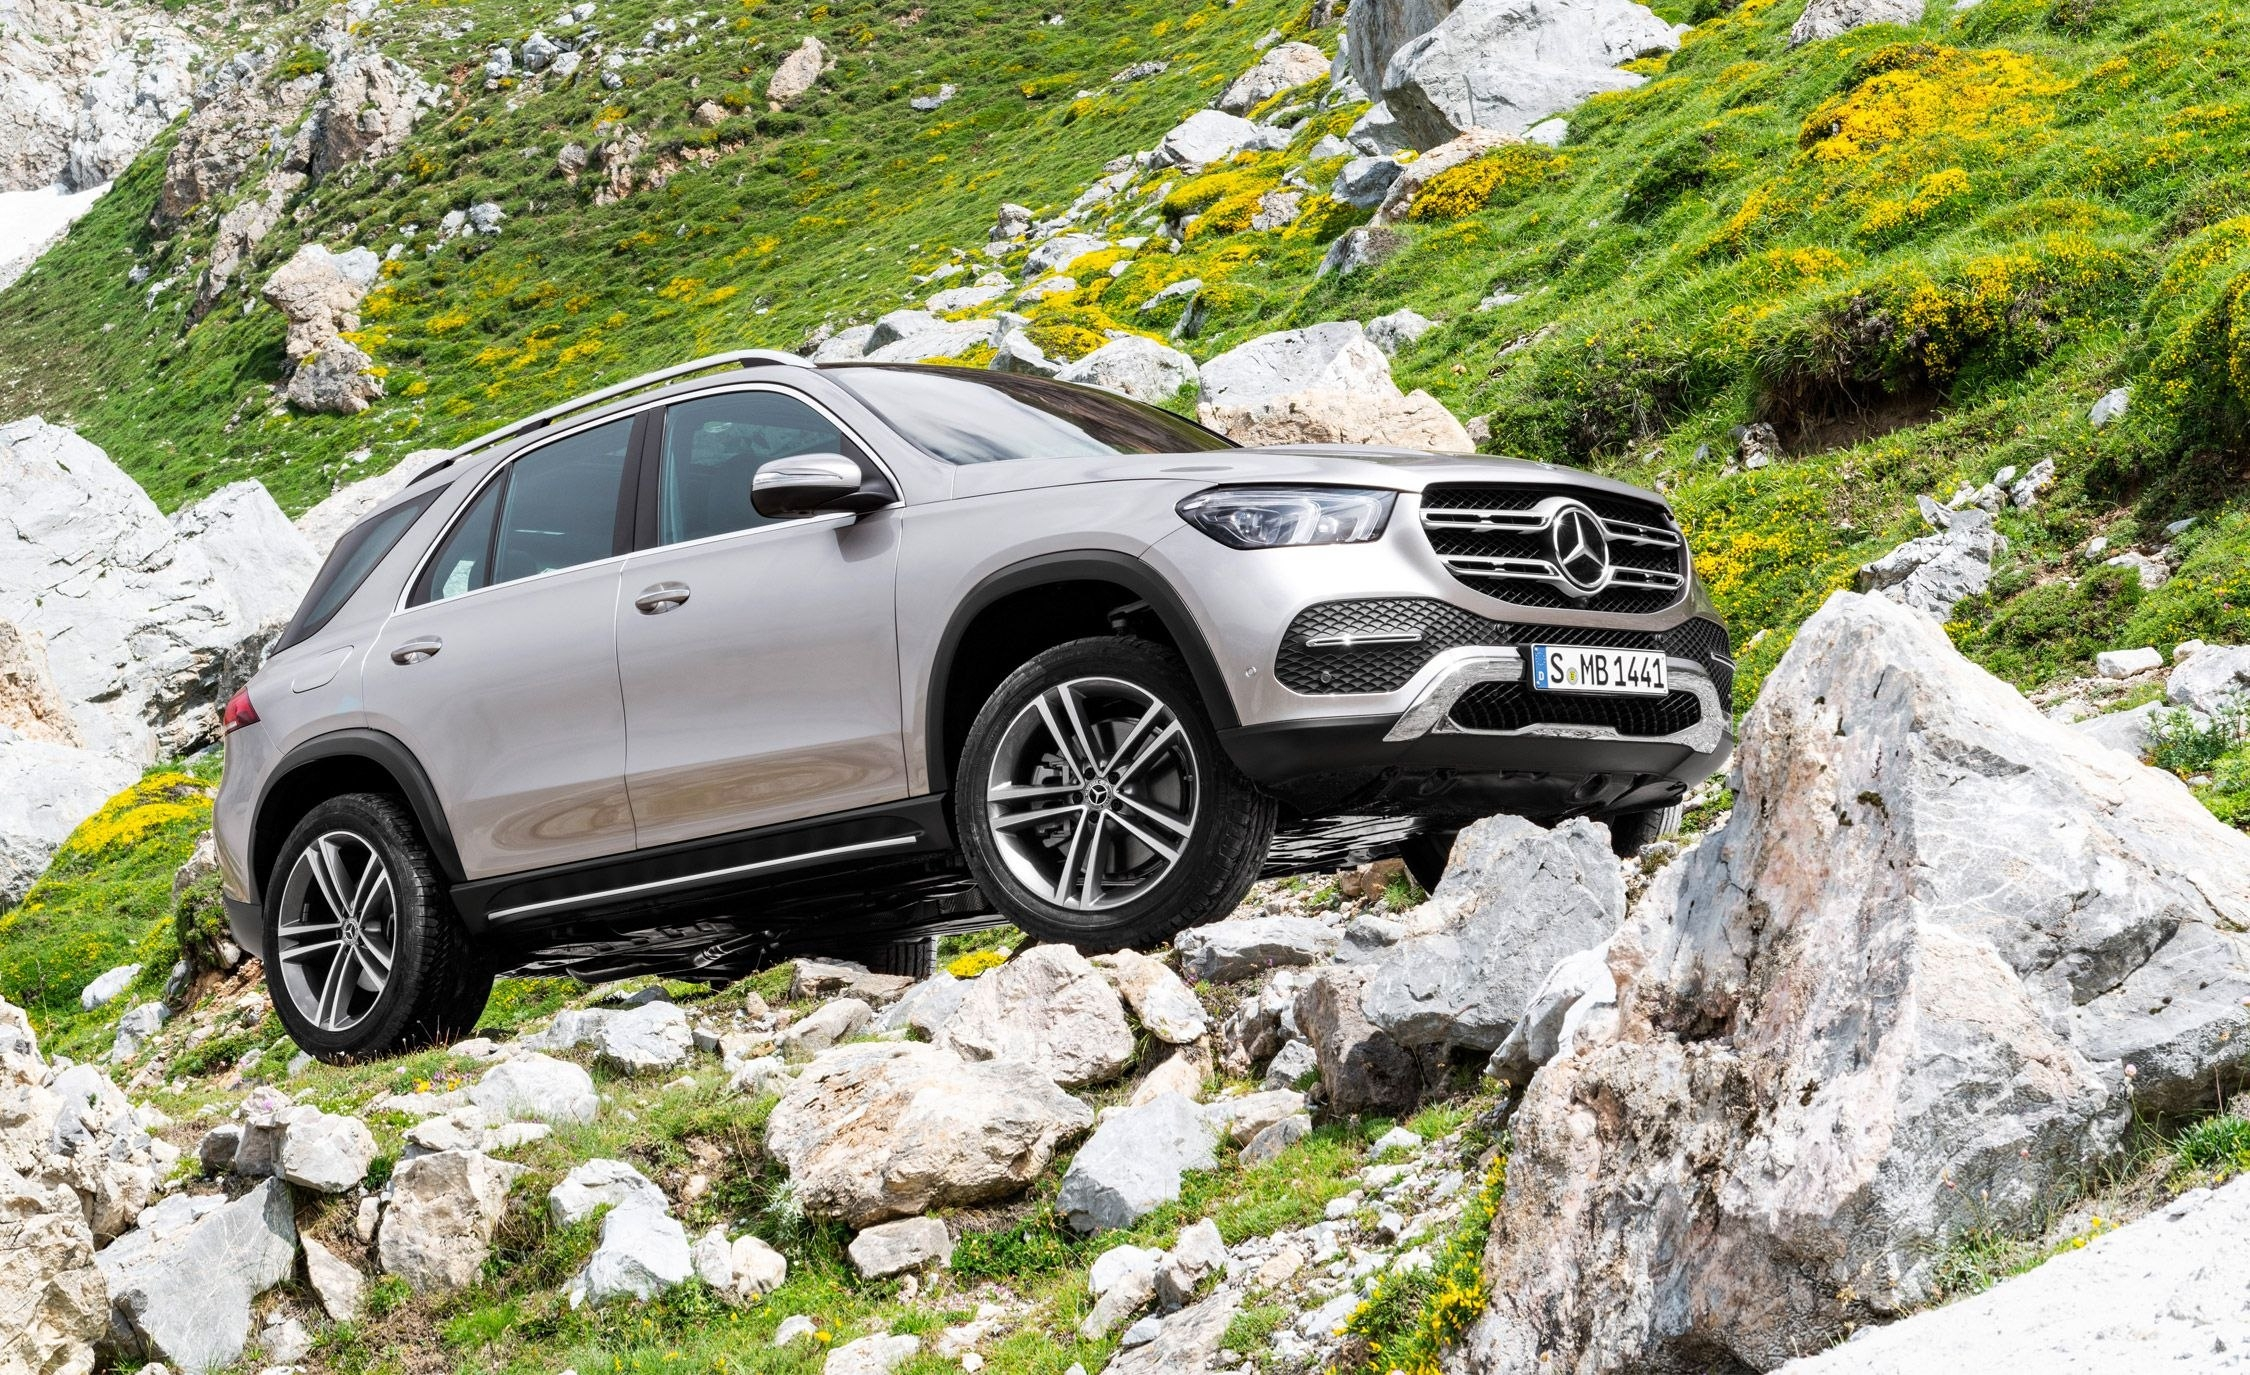 73 The 2020 Mercedes ML Class 400 Review